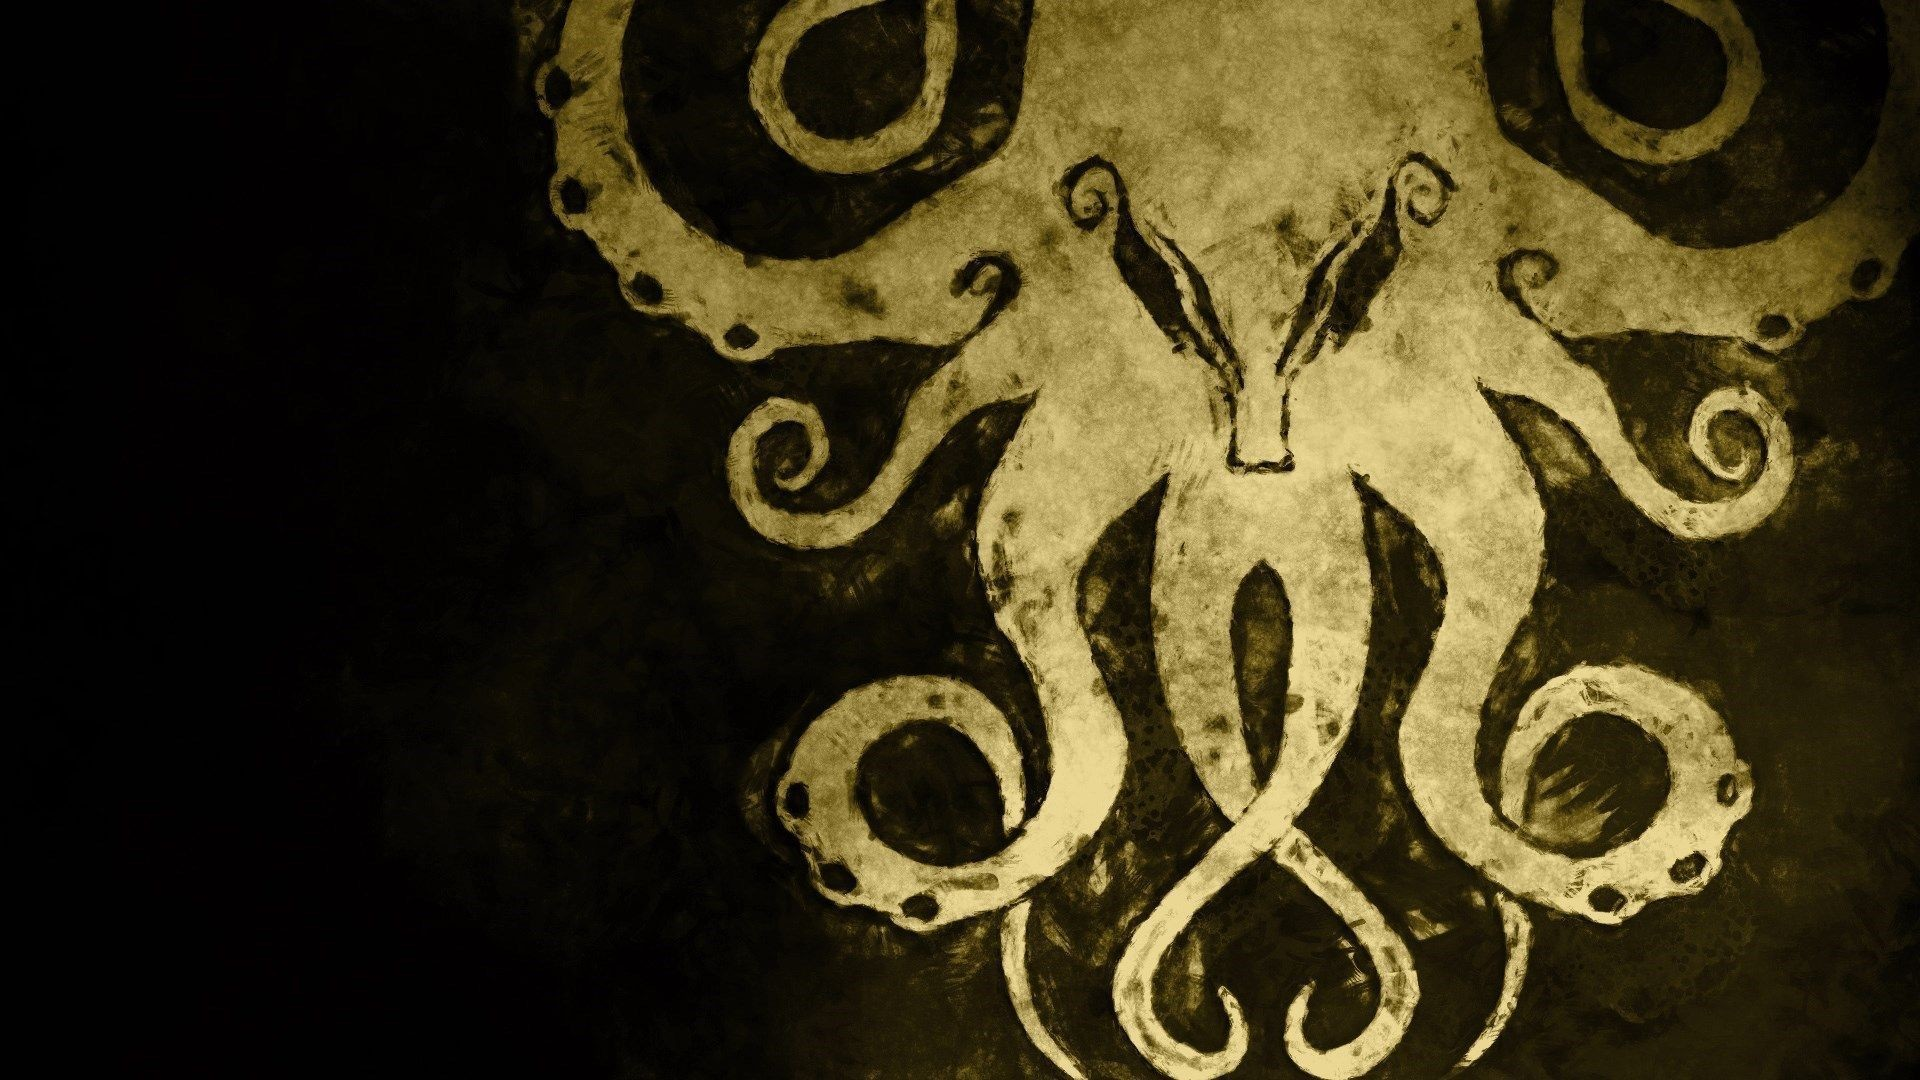 1920x1080 cthulhu-drawing-art-hd-wallpaper - Magic4Walls.com